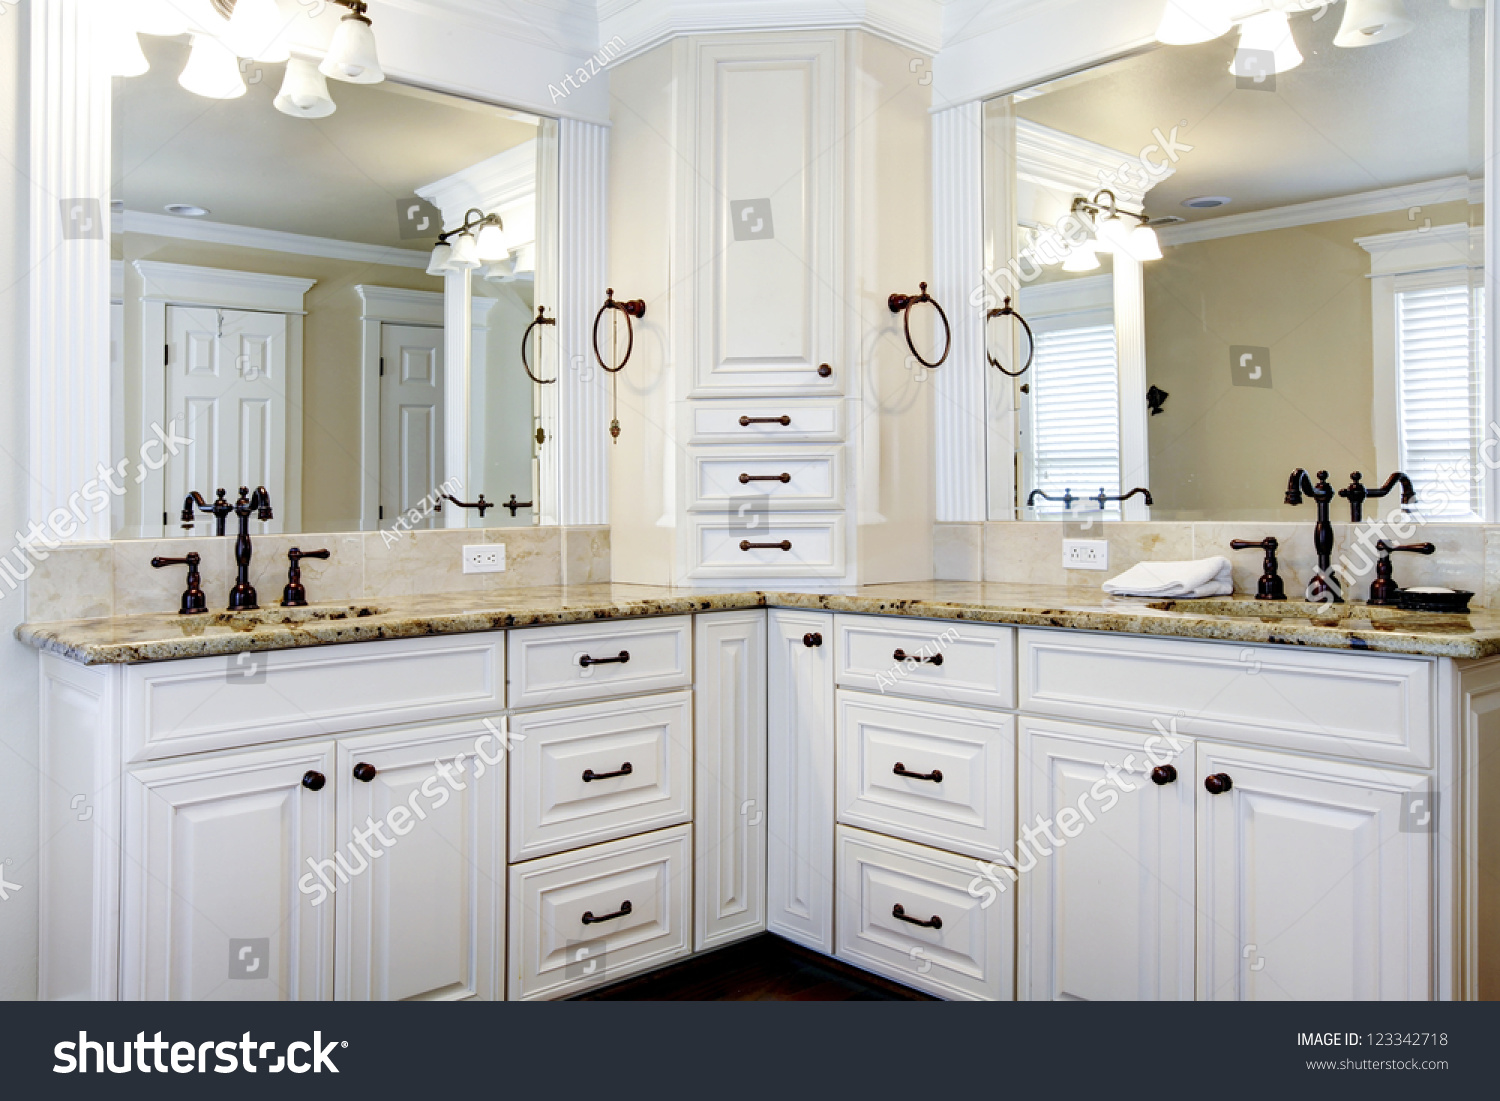 Luxury large white master bathroom cabinets with double - Large bathroom sink with two faucets ...